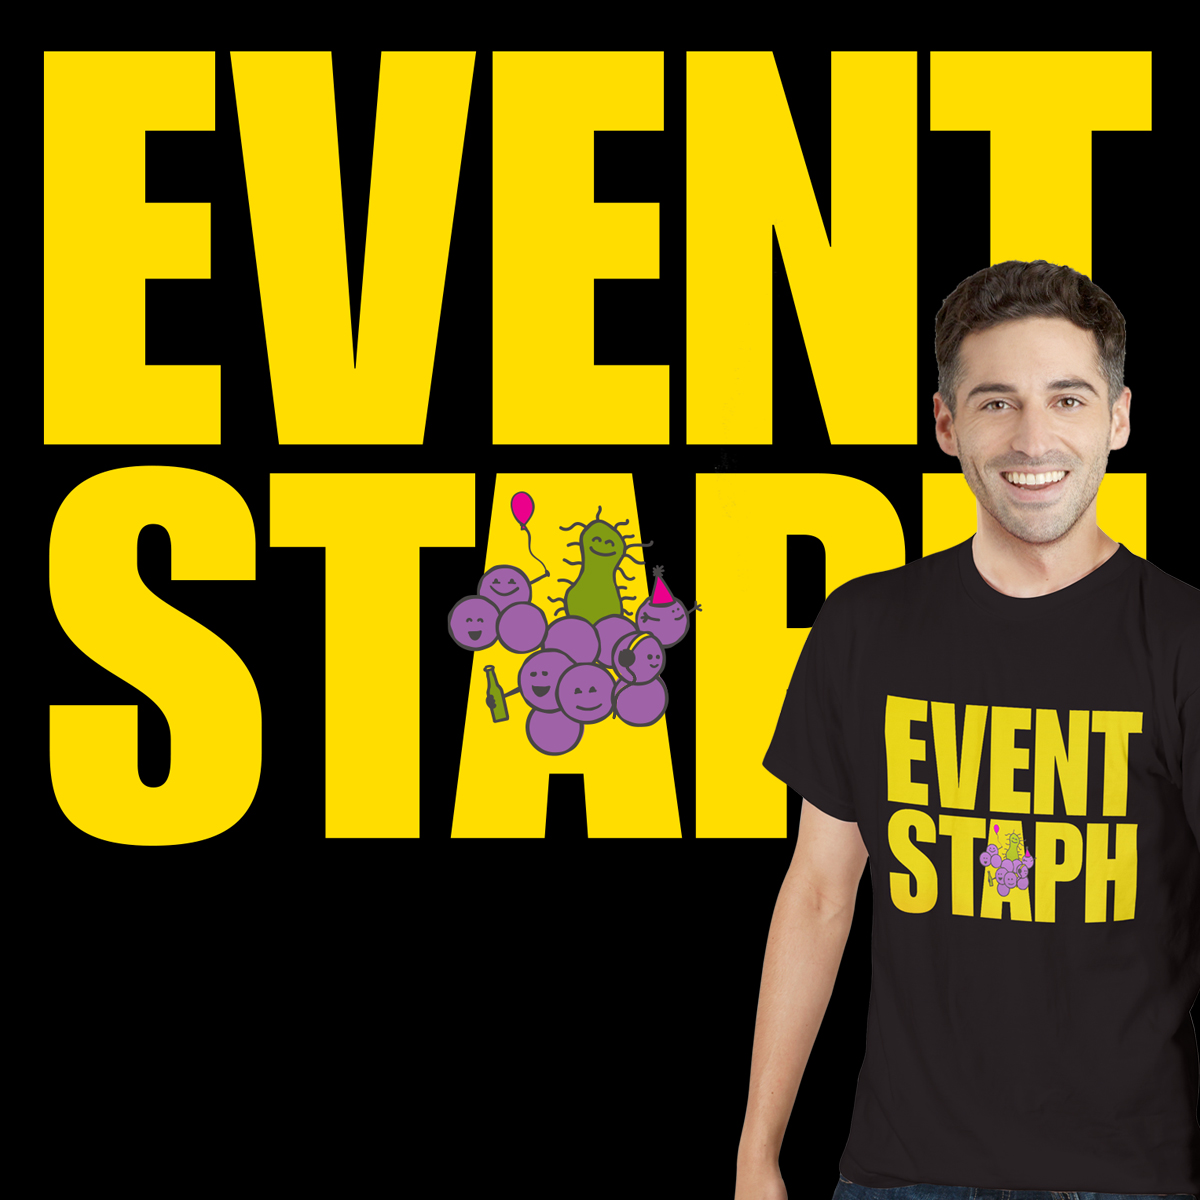 funny event staph staff shirt